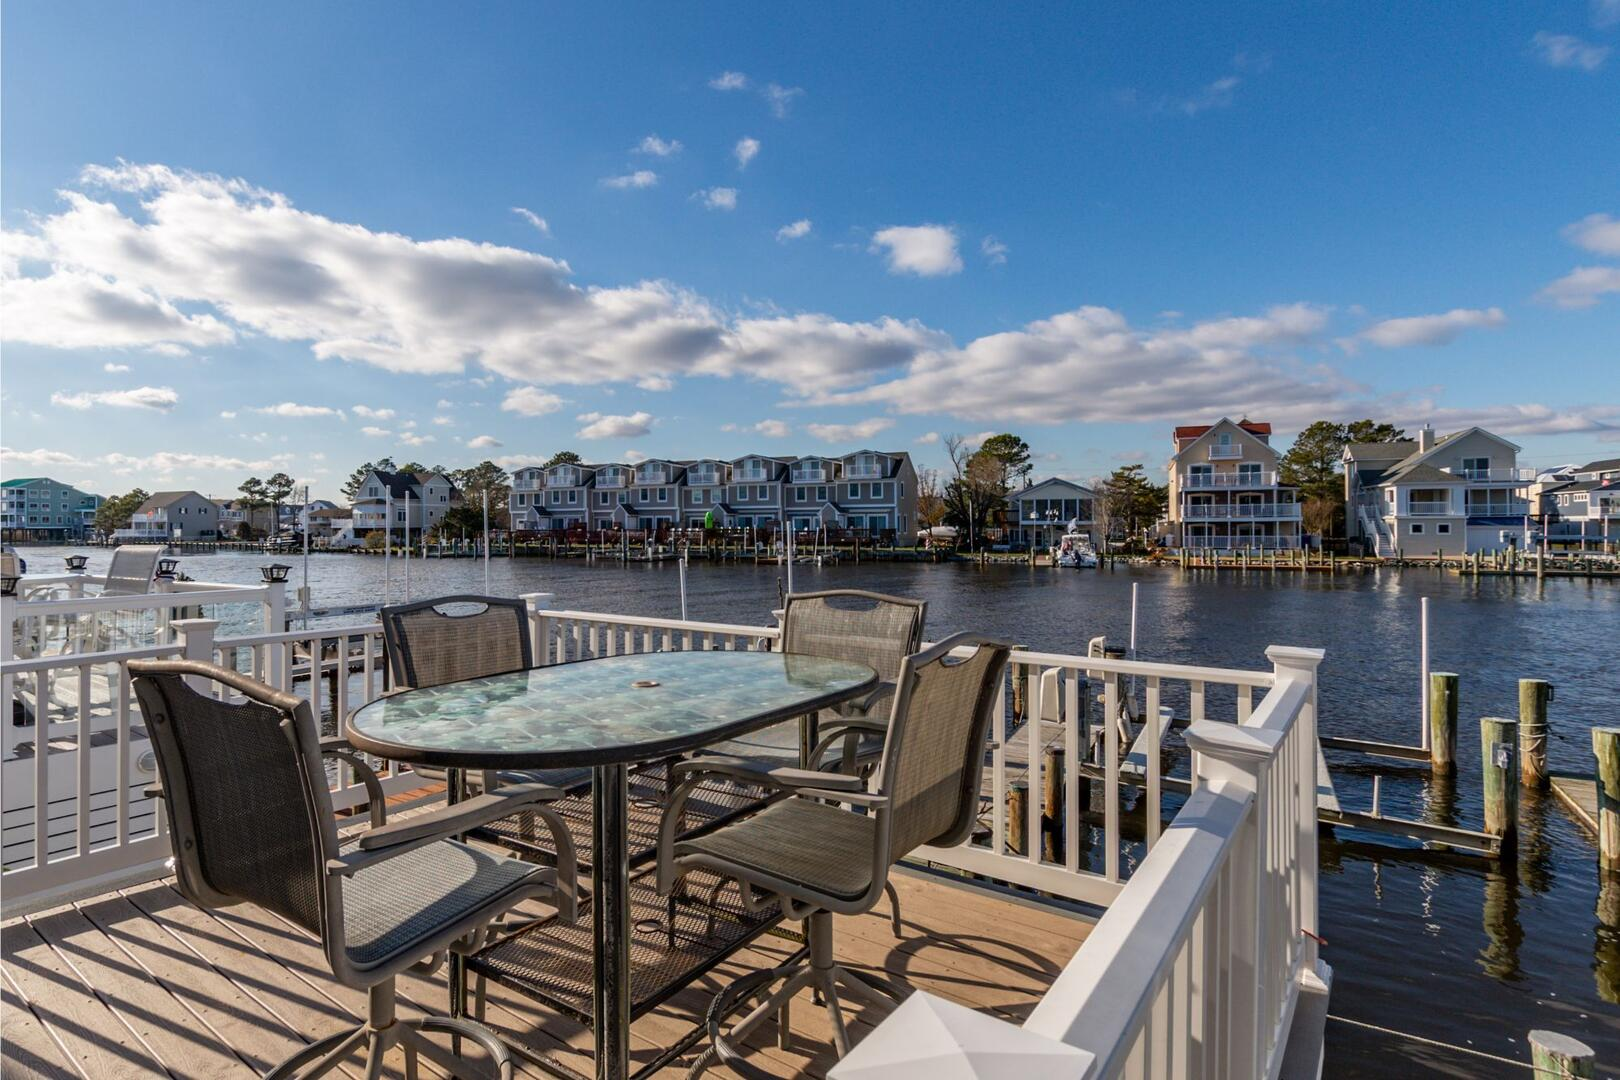 Waterfront Deck of Sunset Harbour 14127B